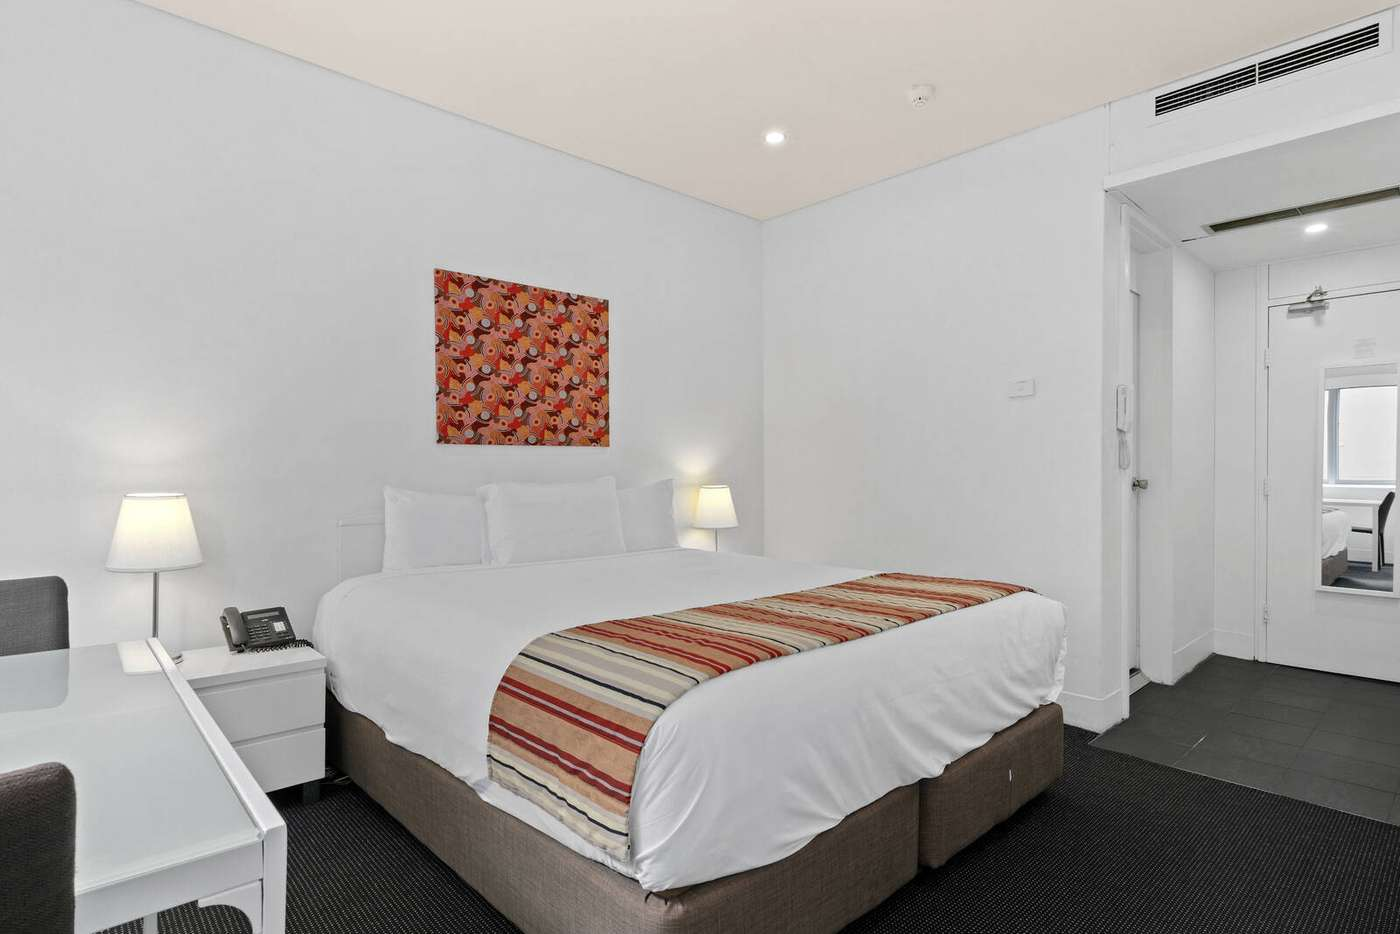 Fifth view of Homely studio listing, 301/28 Macleay Street, Potts Point NSW 2011